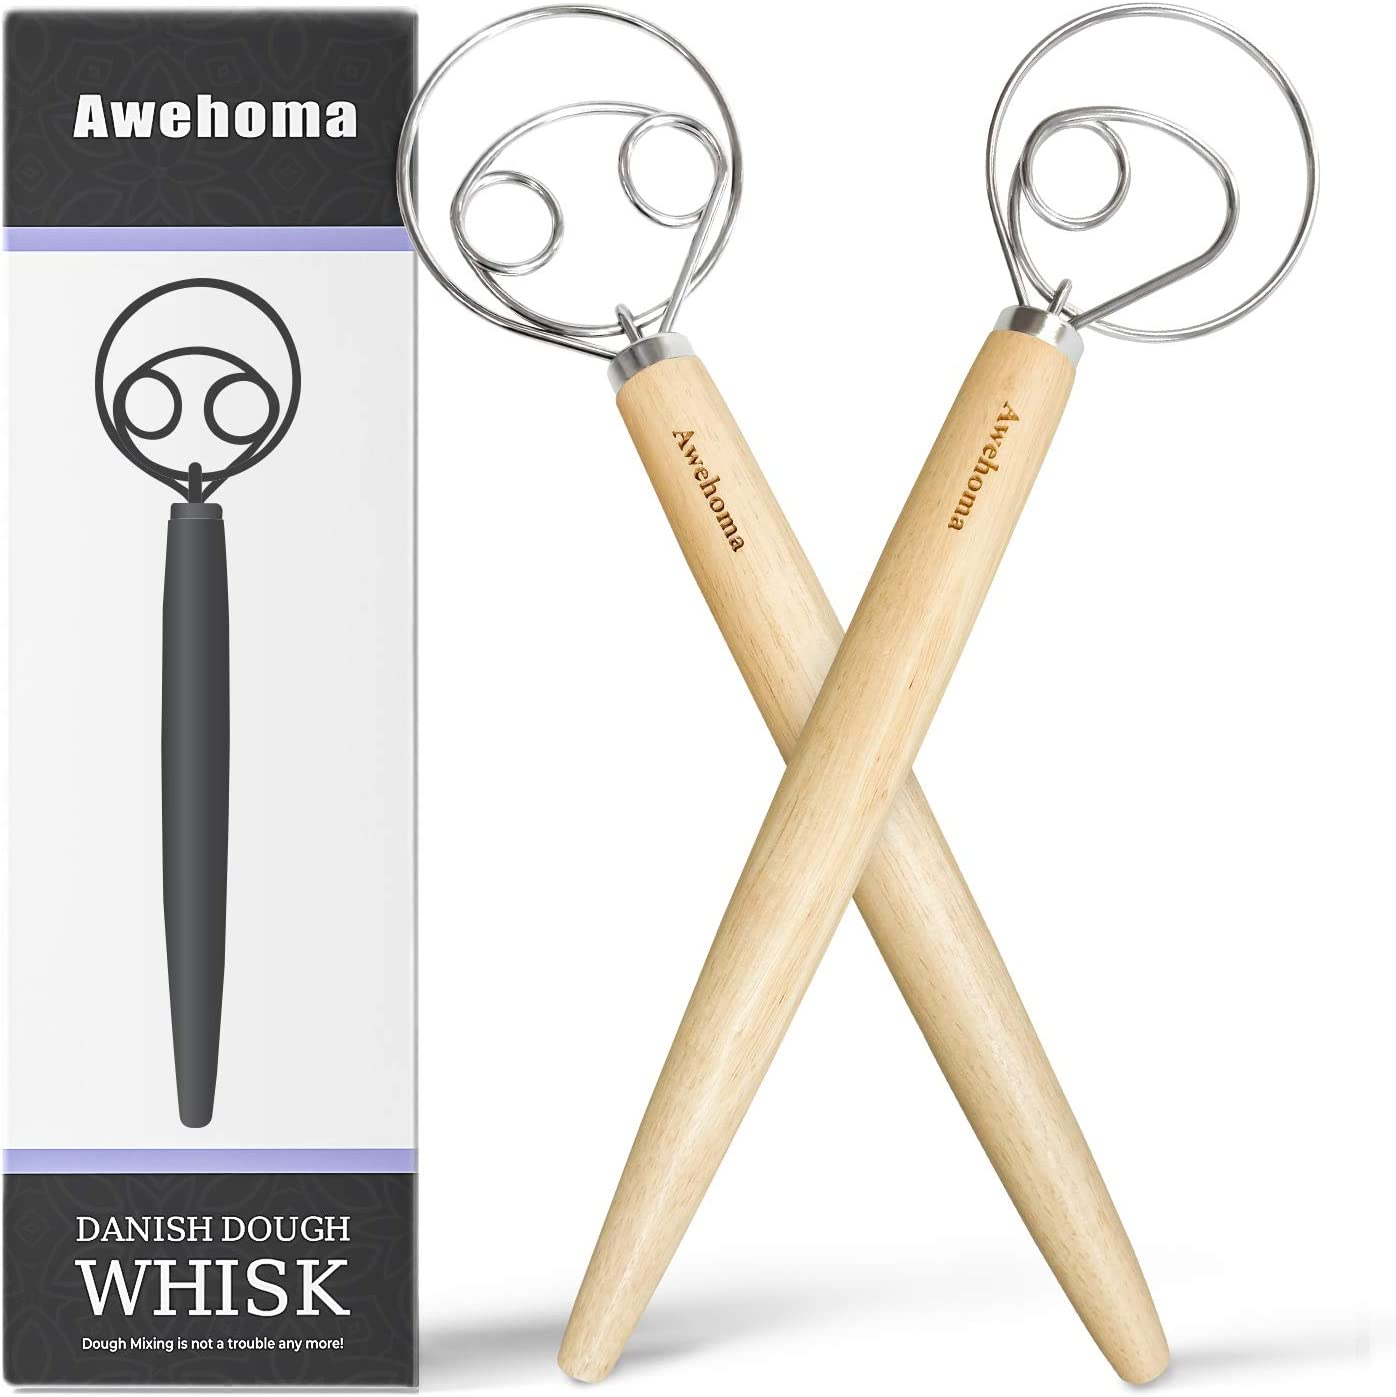 """Awehoma Danish Dough Whisk Large Hand Mixer - 2 Pack Large 13"""" Stainless Steel & Wooden Danish Whisk - Dutch Style Artisan Blender for Bread, Batter, Cake, Pastry, and More -Gift for Bakers"""